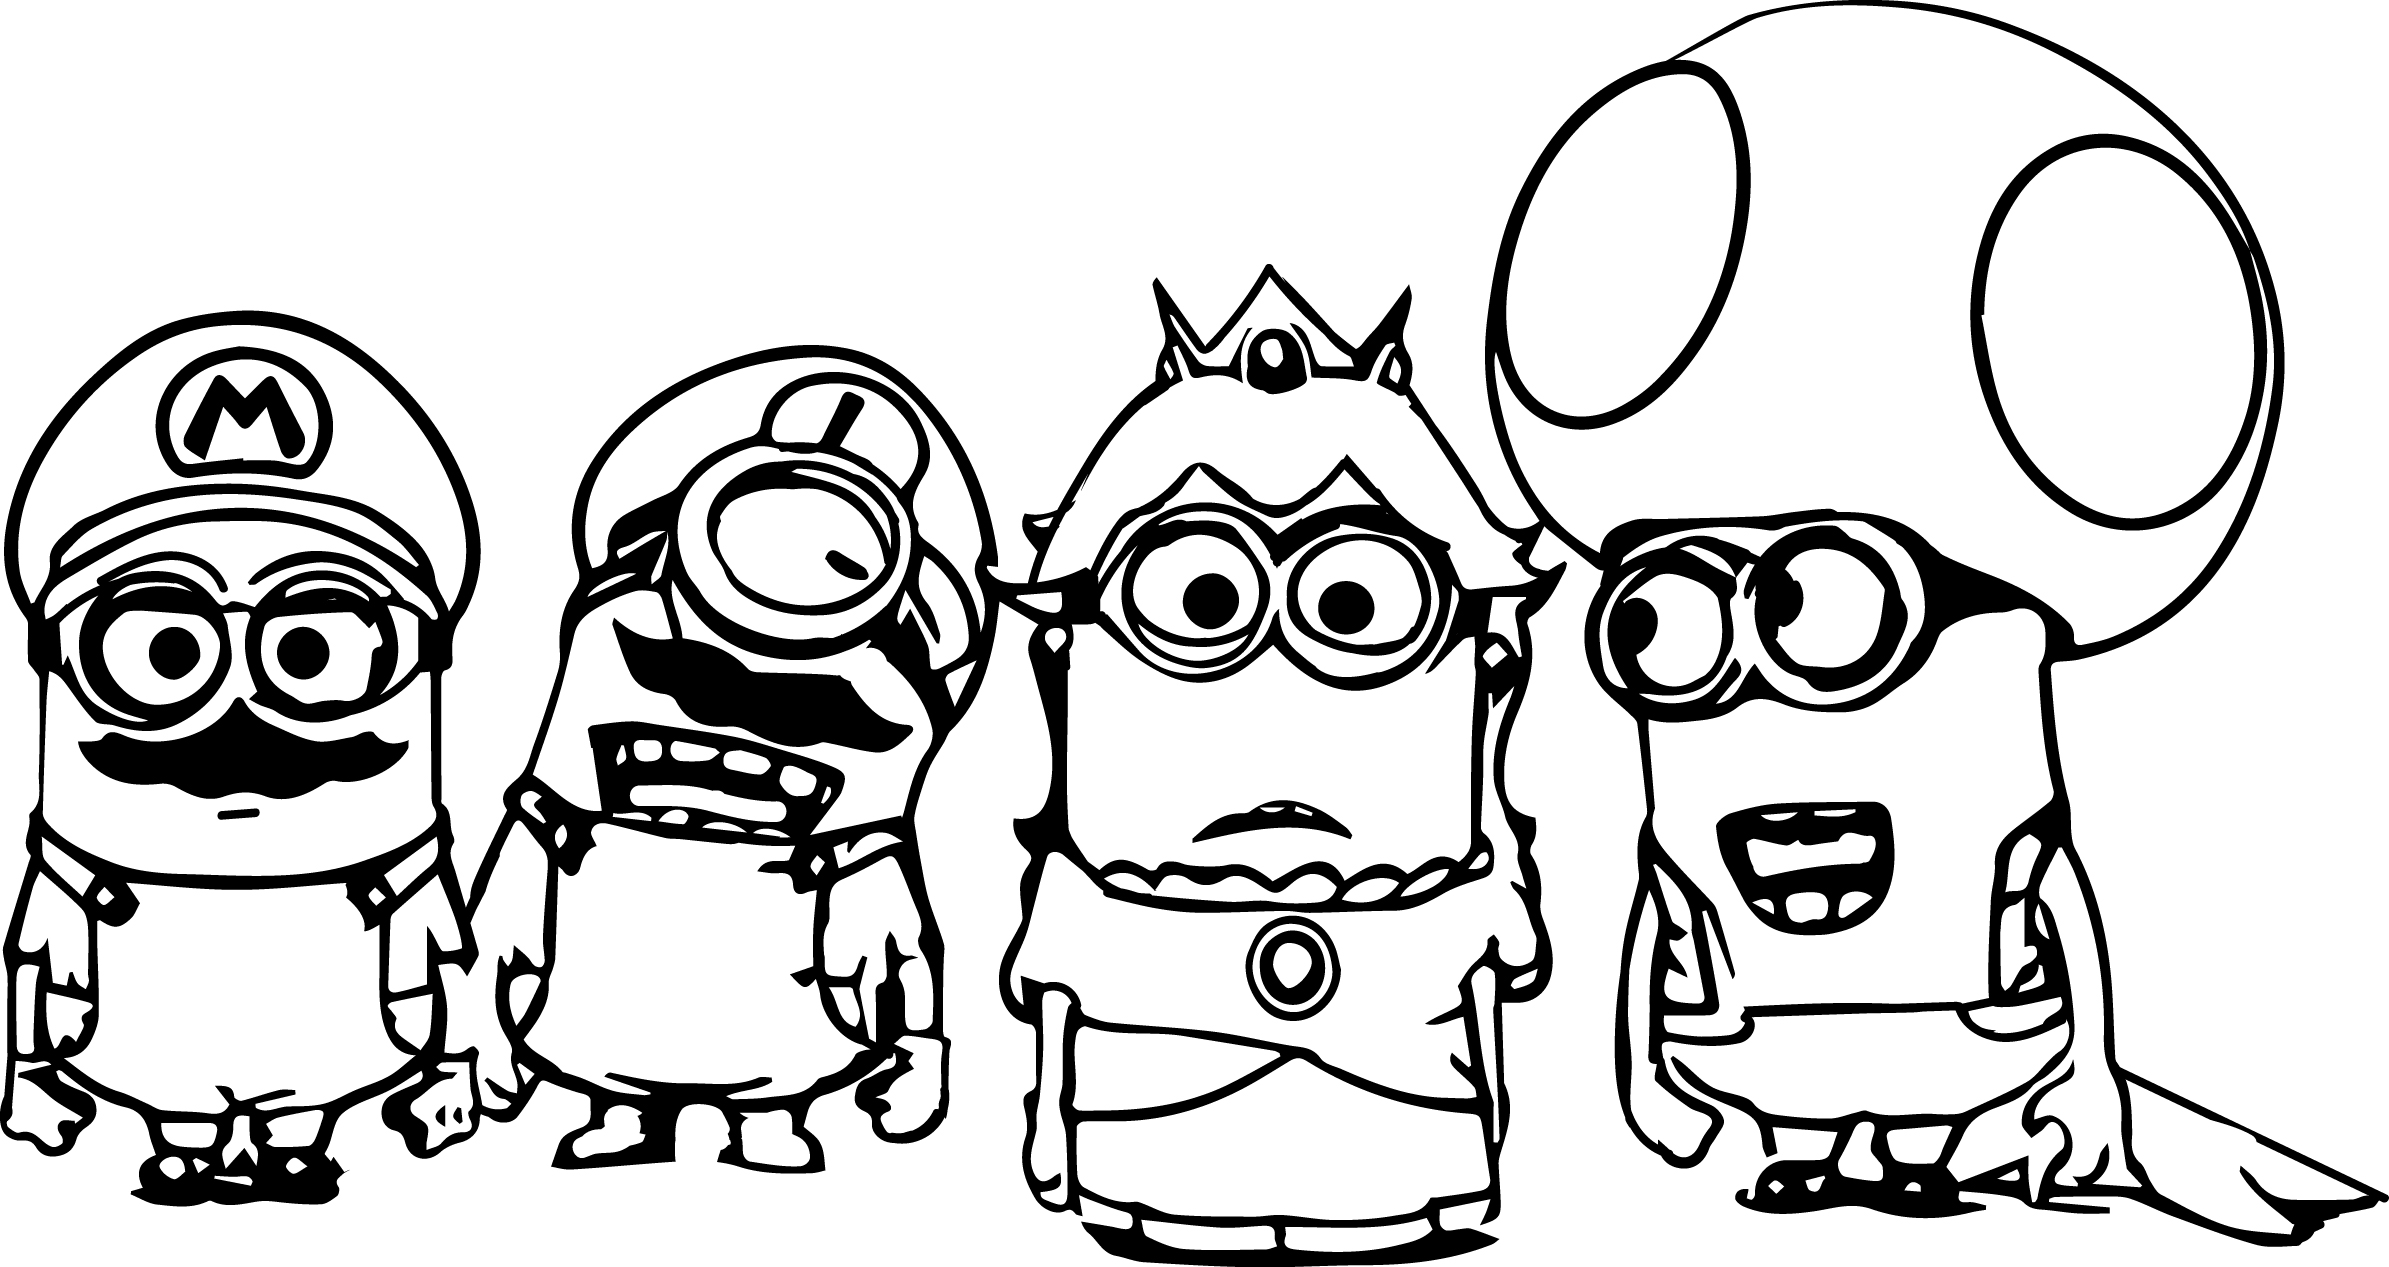 minion coloring pages - Minion Coloring Pages